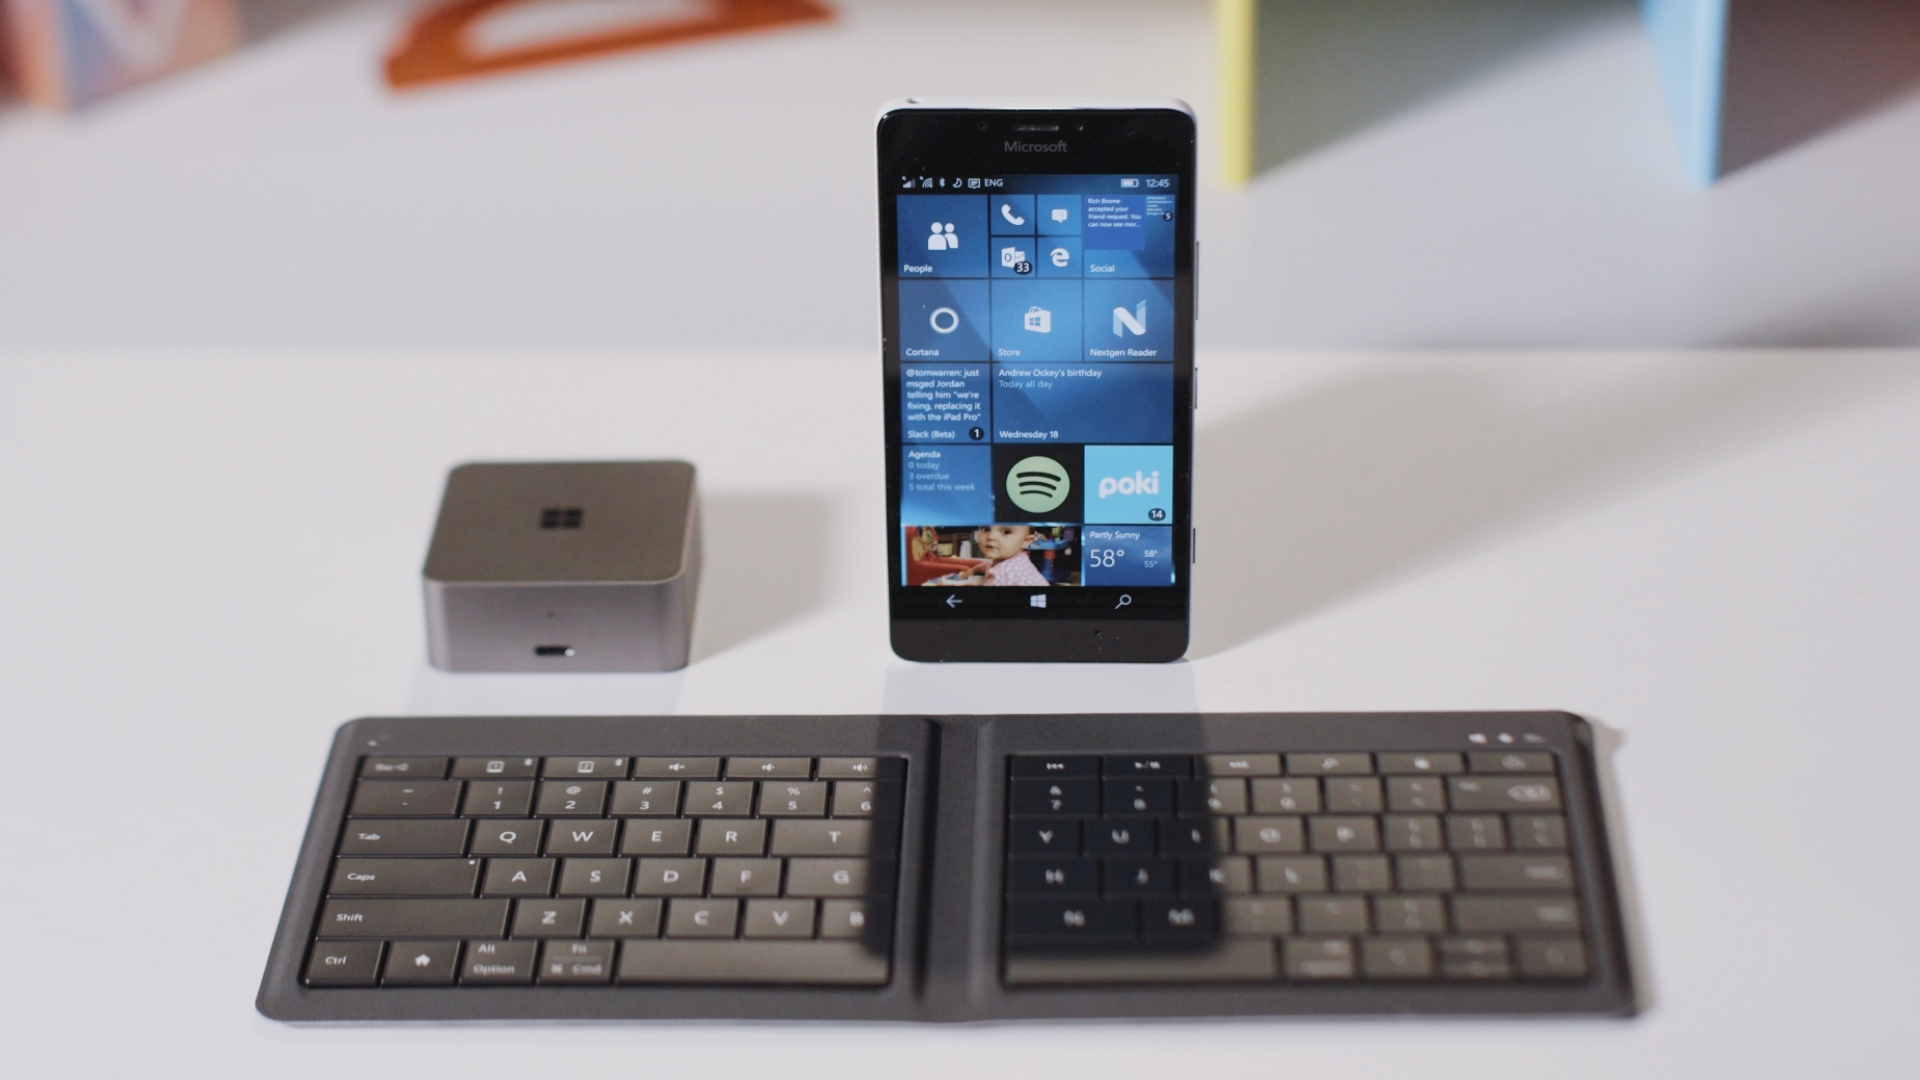 Microsoft is about to turn a phone into a real PC - The Verge